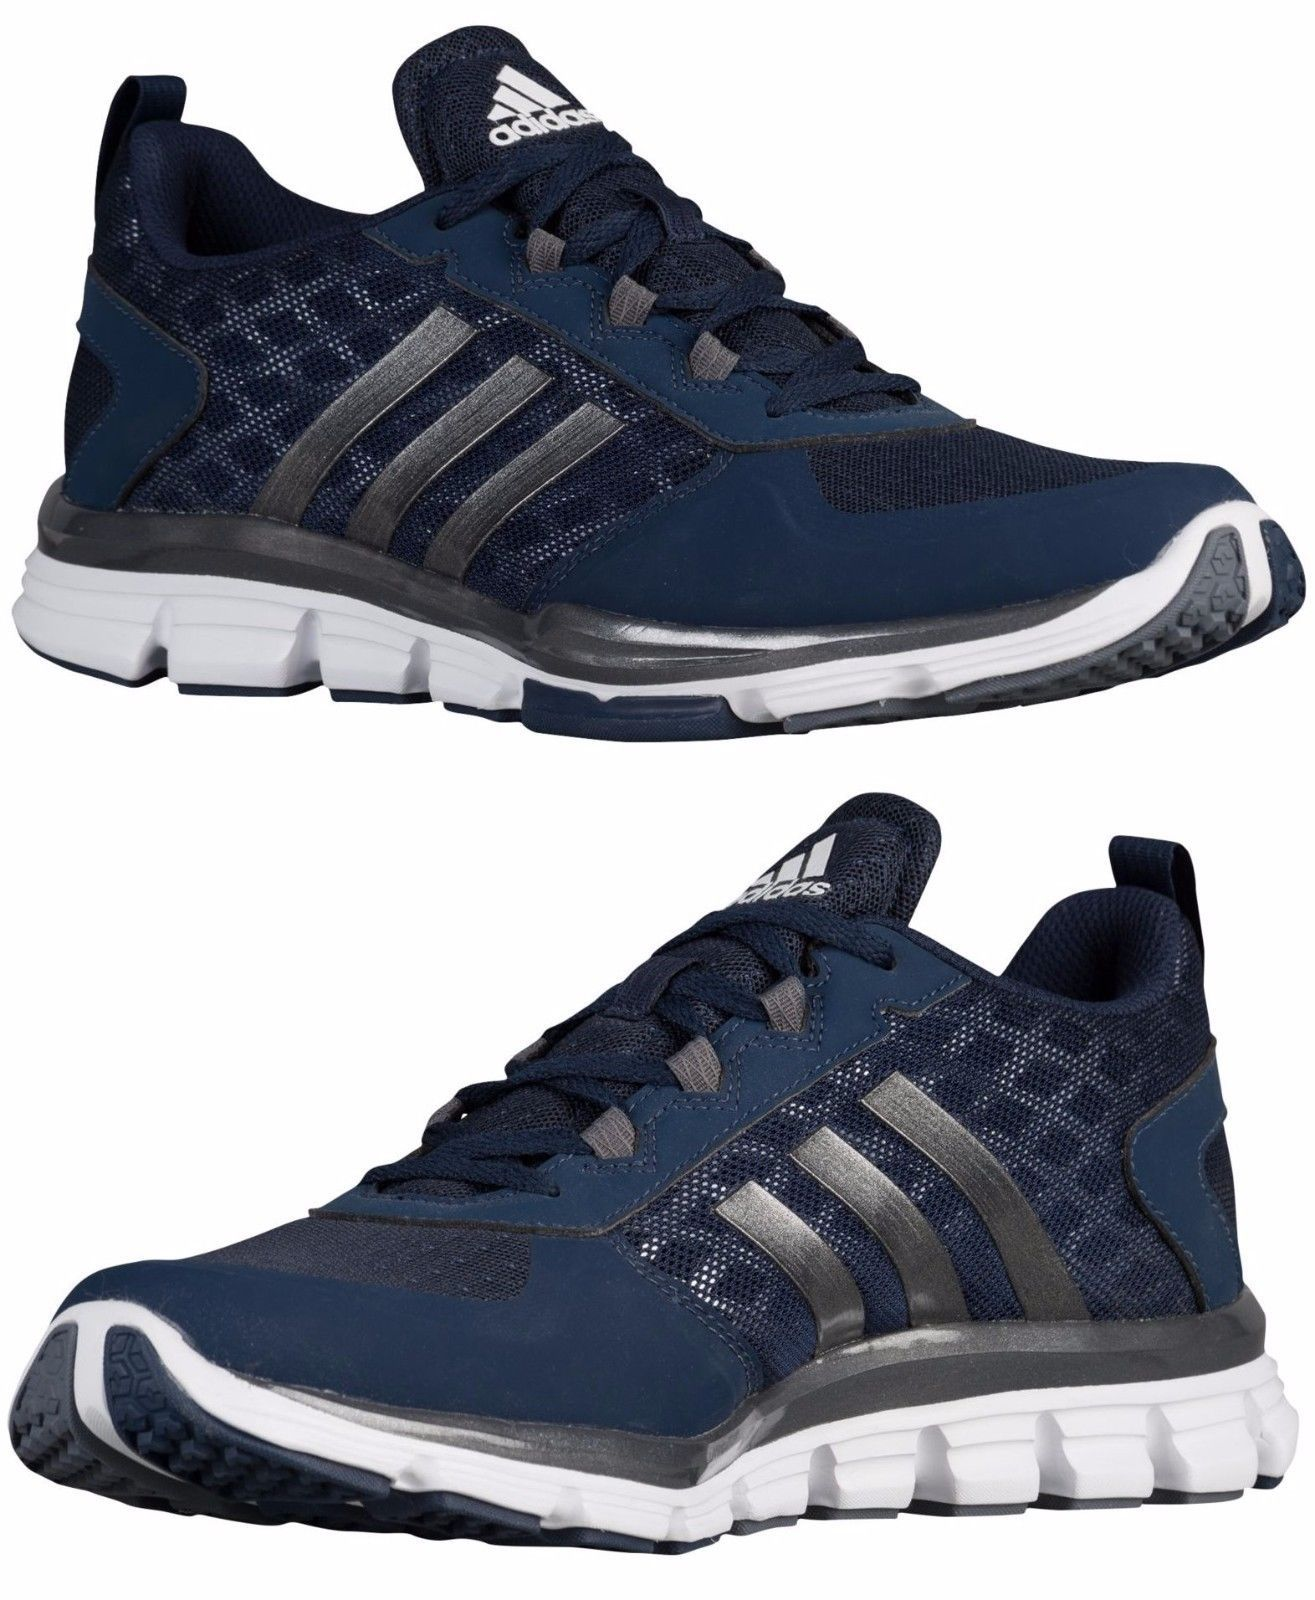 adidas men's speed trainer 2